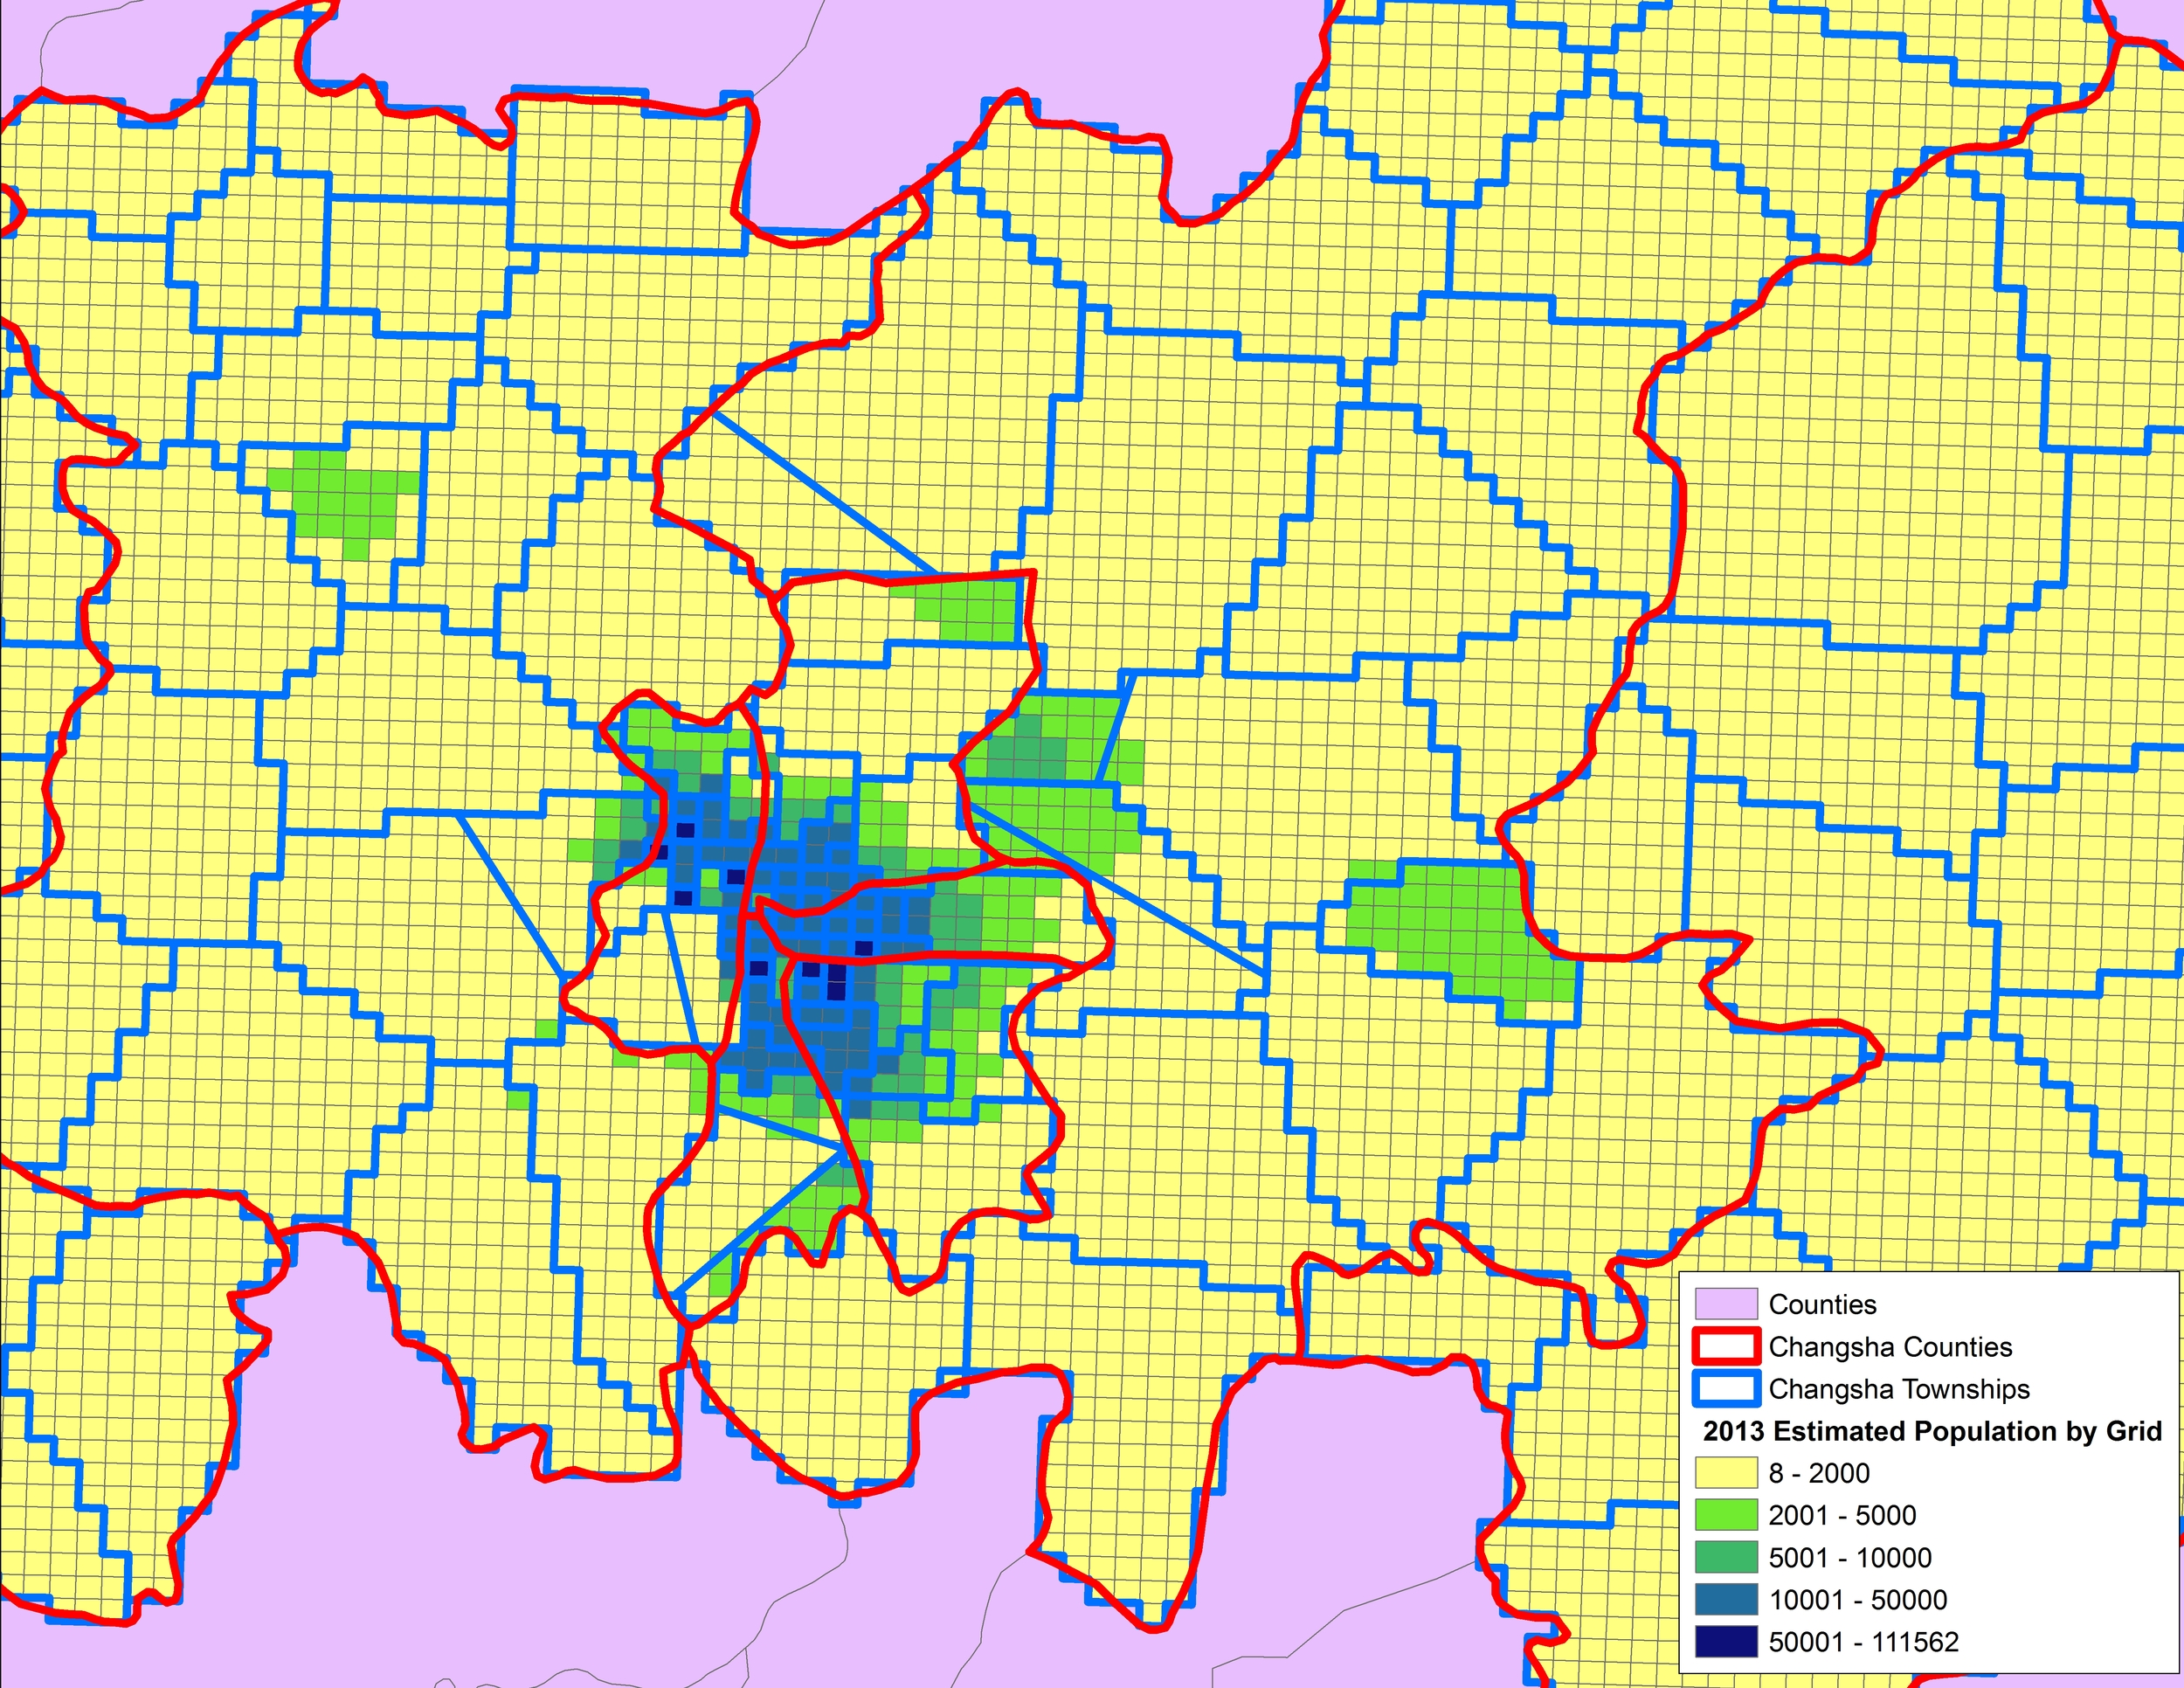 2013 Estimated Population by 1 km sq Grid